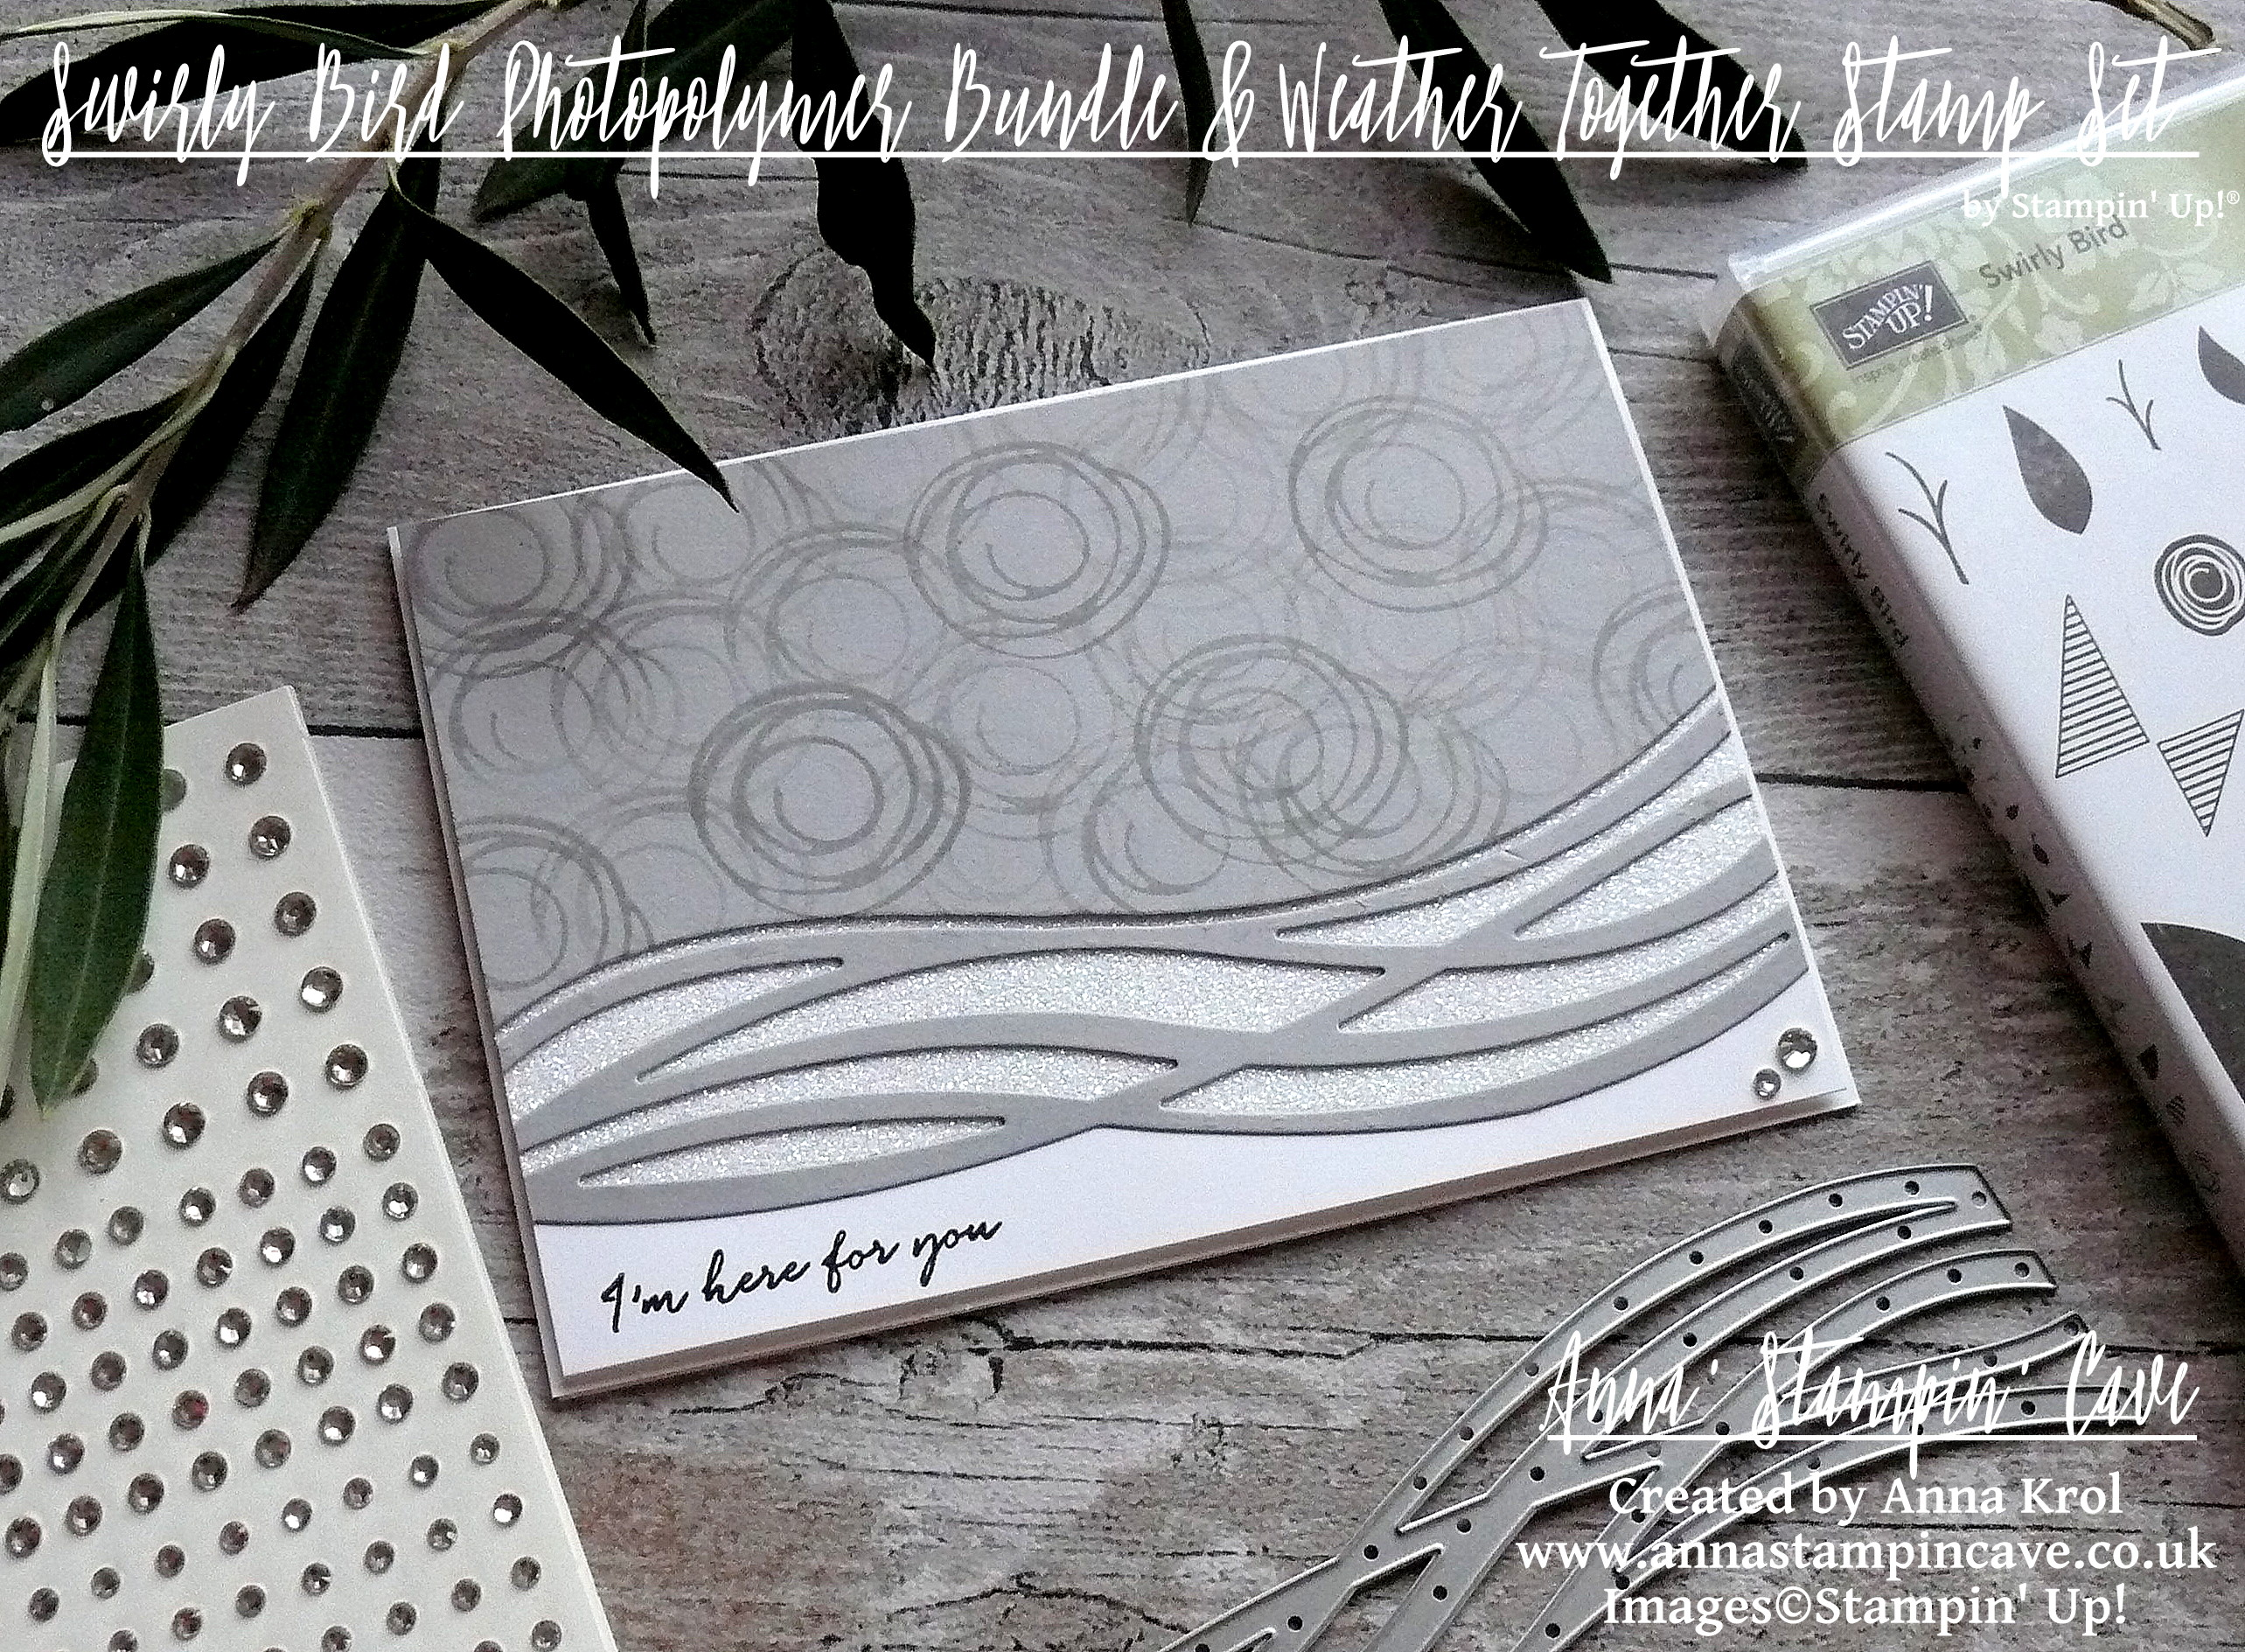 stampin-up-swirly-bird-photopolymer-bundle-monochromatic-im-here-for-you-card